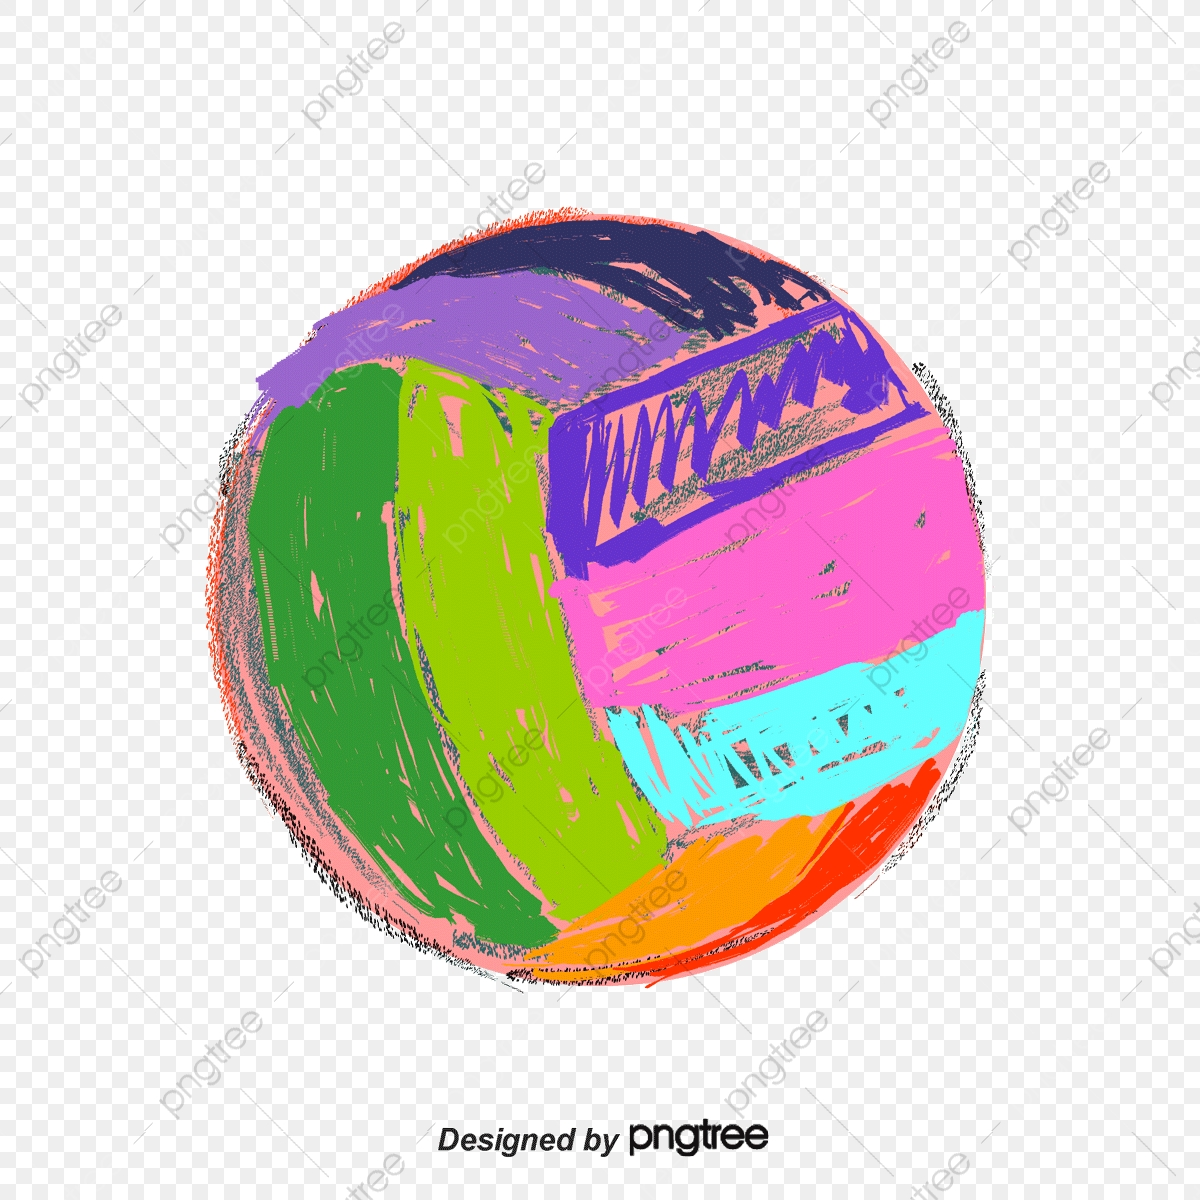 Color Volleyball, Volleyball Clipart, Colored Volleyball, Volleyball.